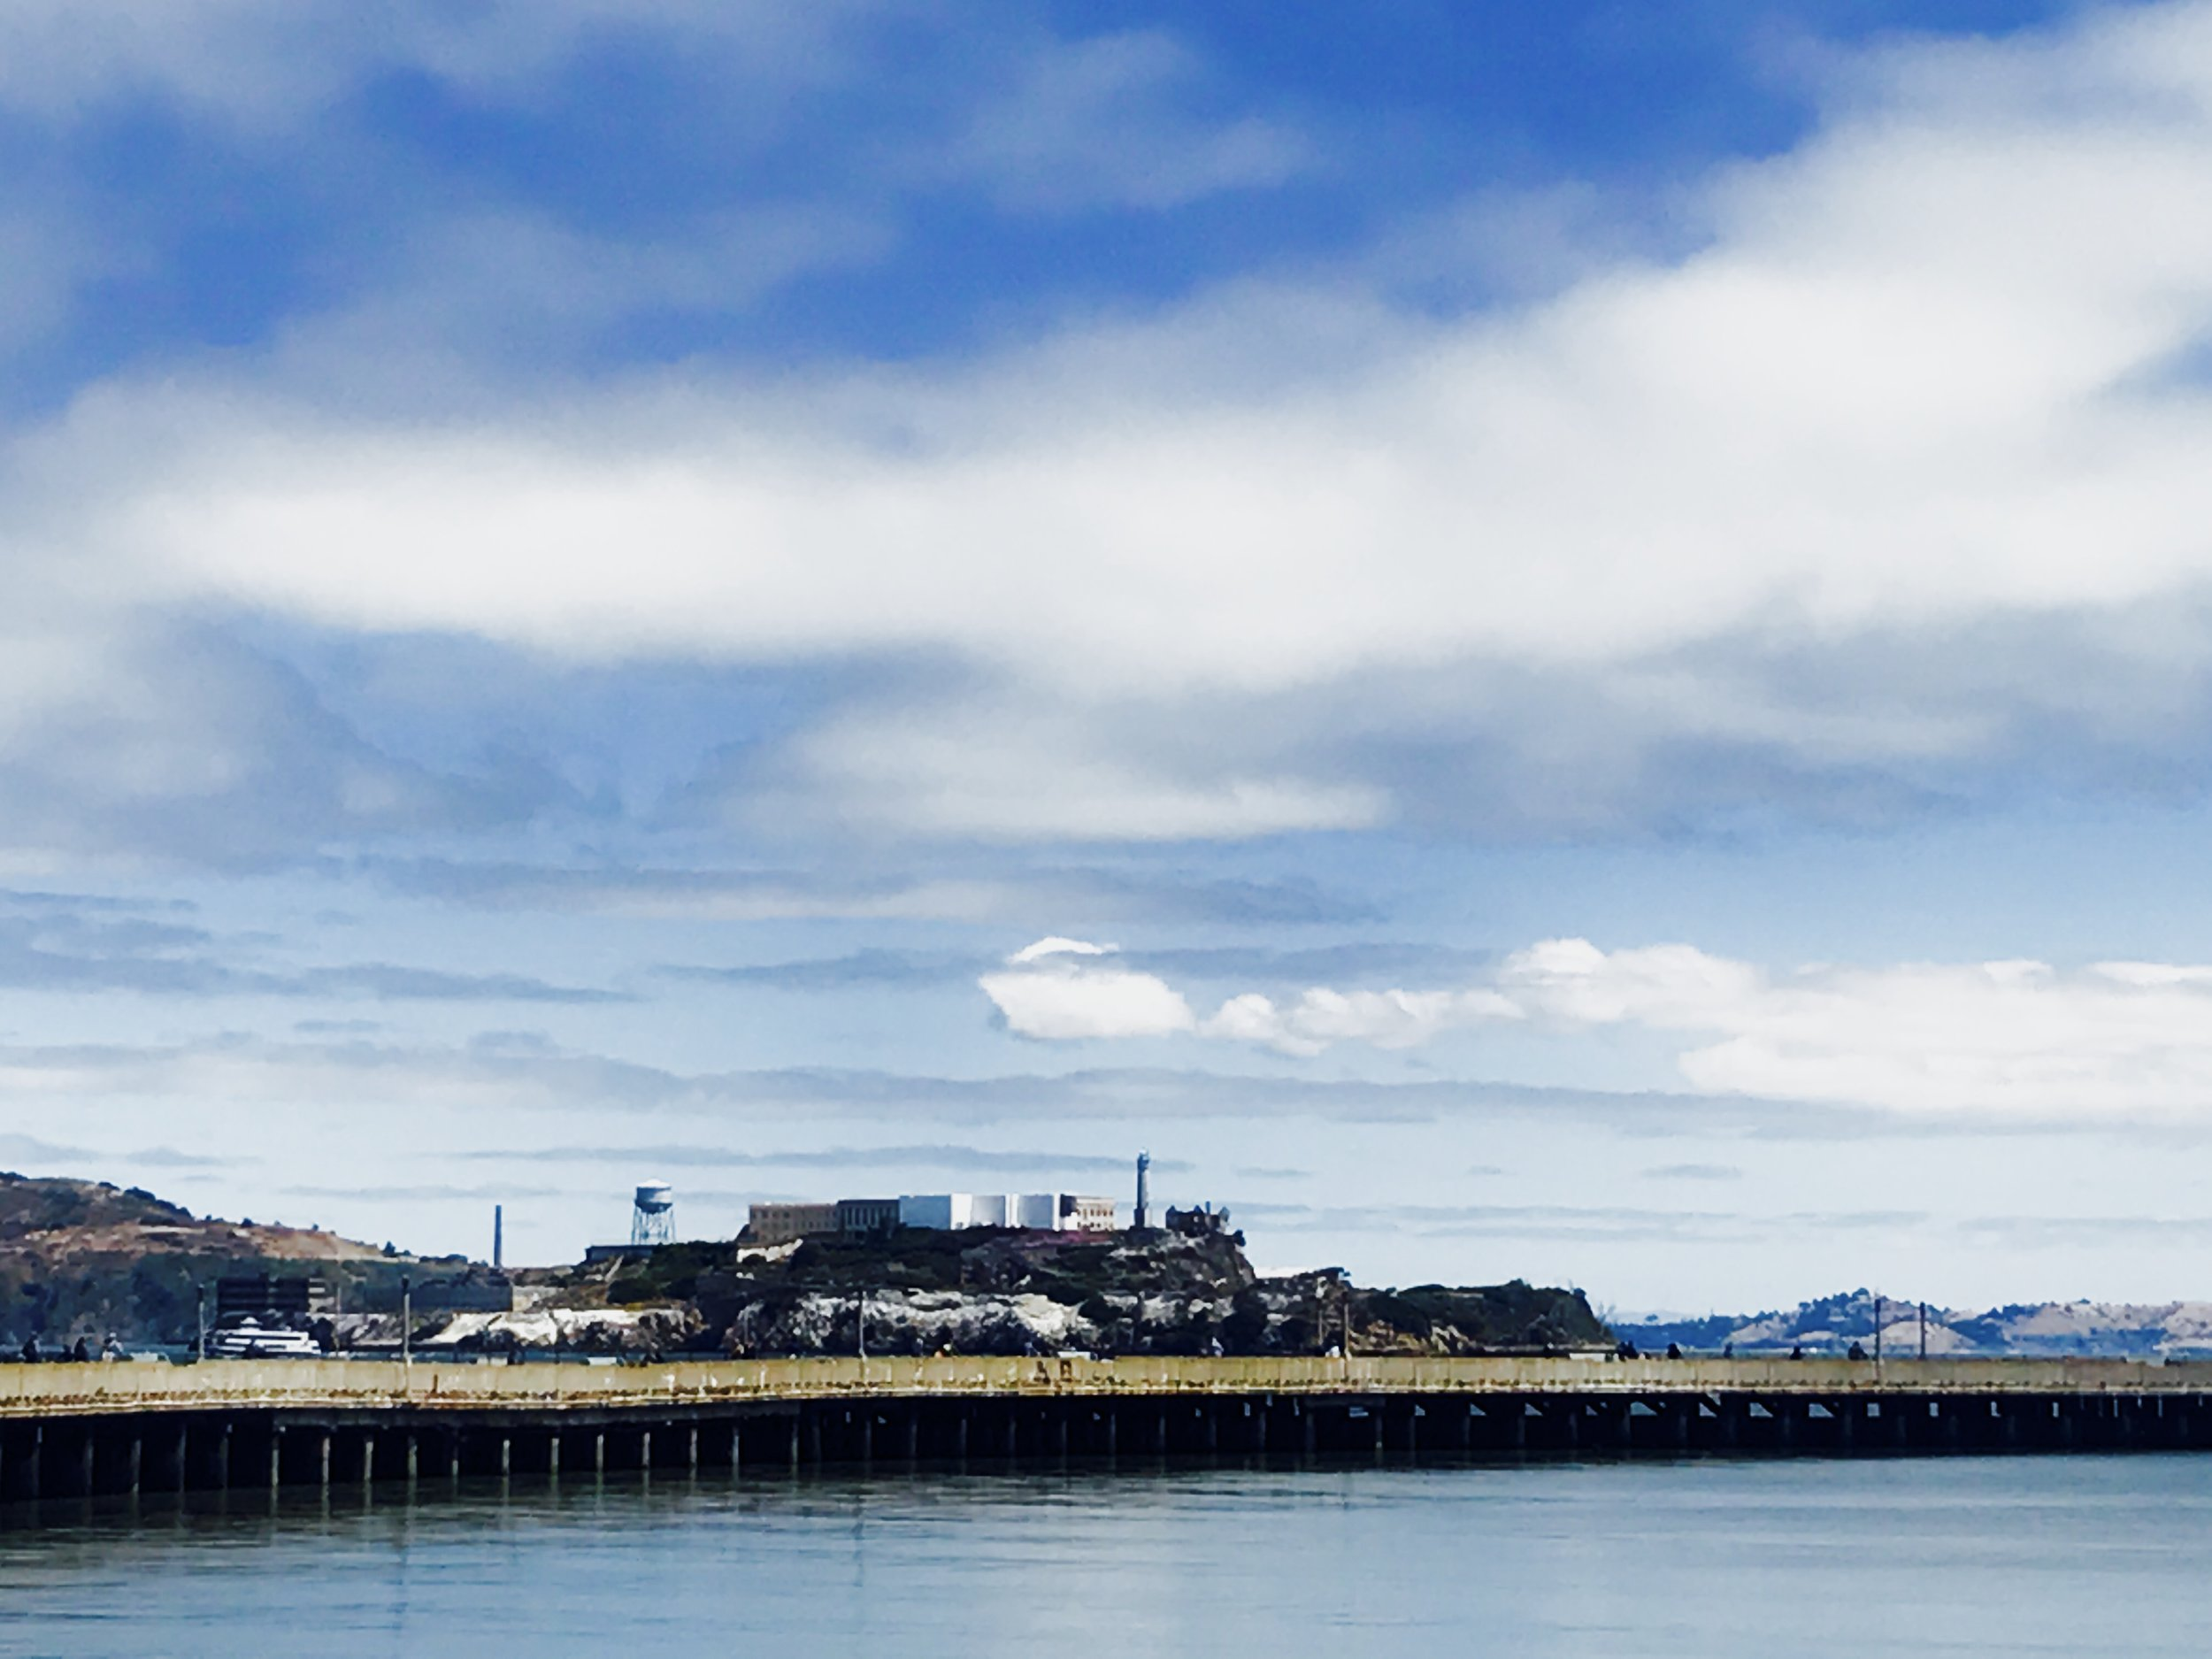 View of Alcatraz from a dock.